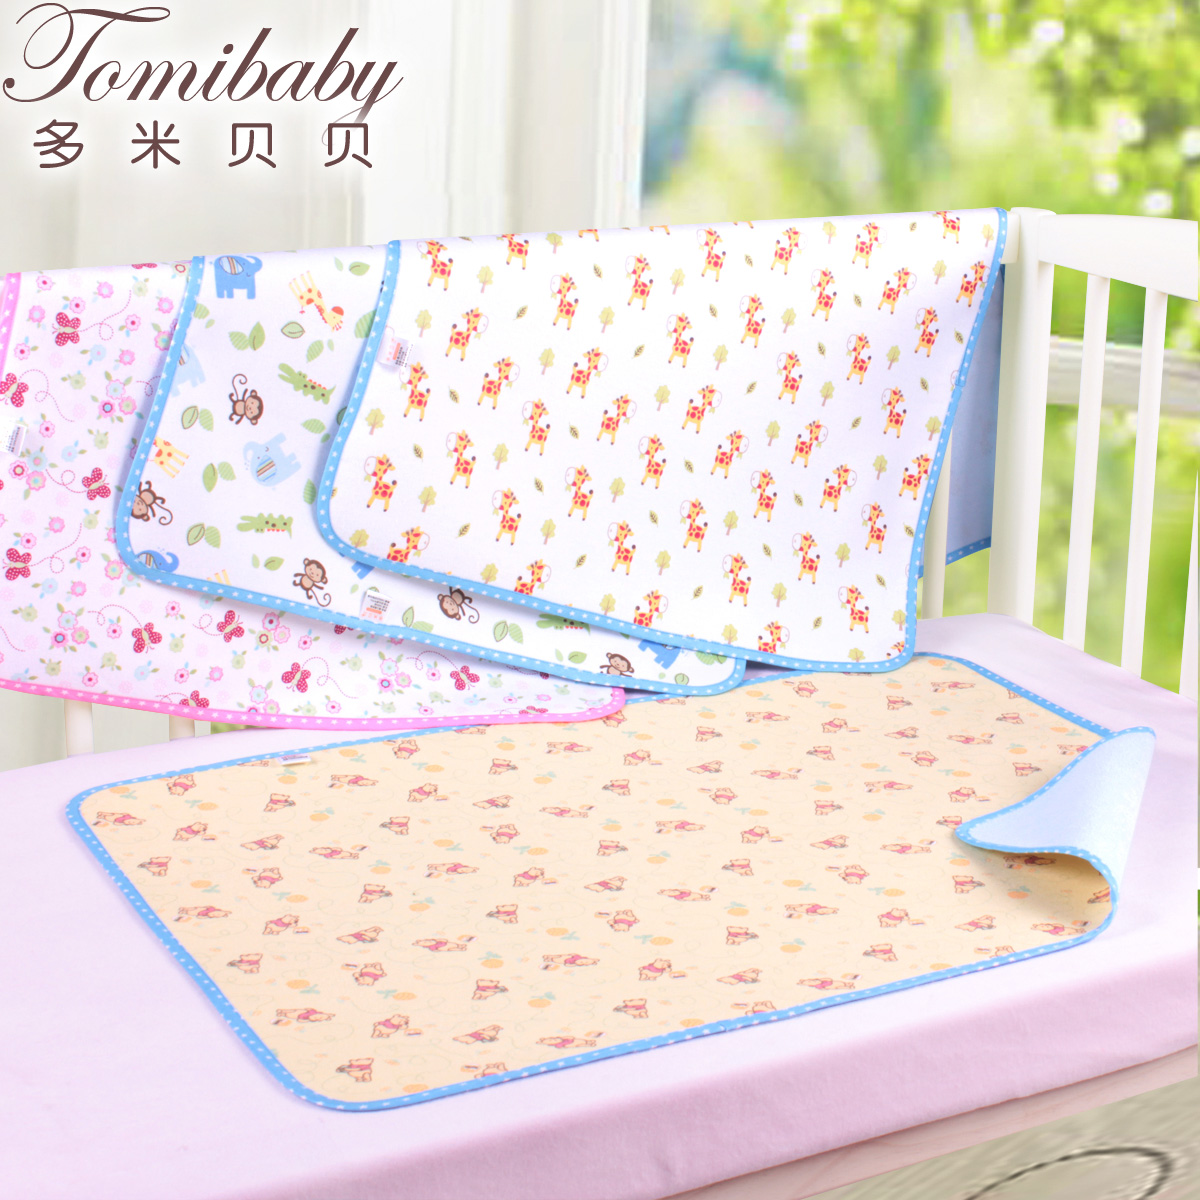 Baby Changing Mat Ultralarge 100 Waterproof Cotton Bed Sheets Bamboo Fibre Pad Newborn Supplies In Pads Covers From Mother Kids On